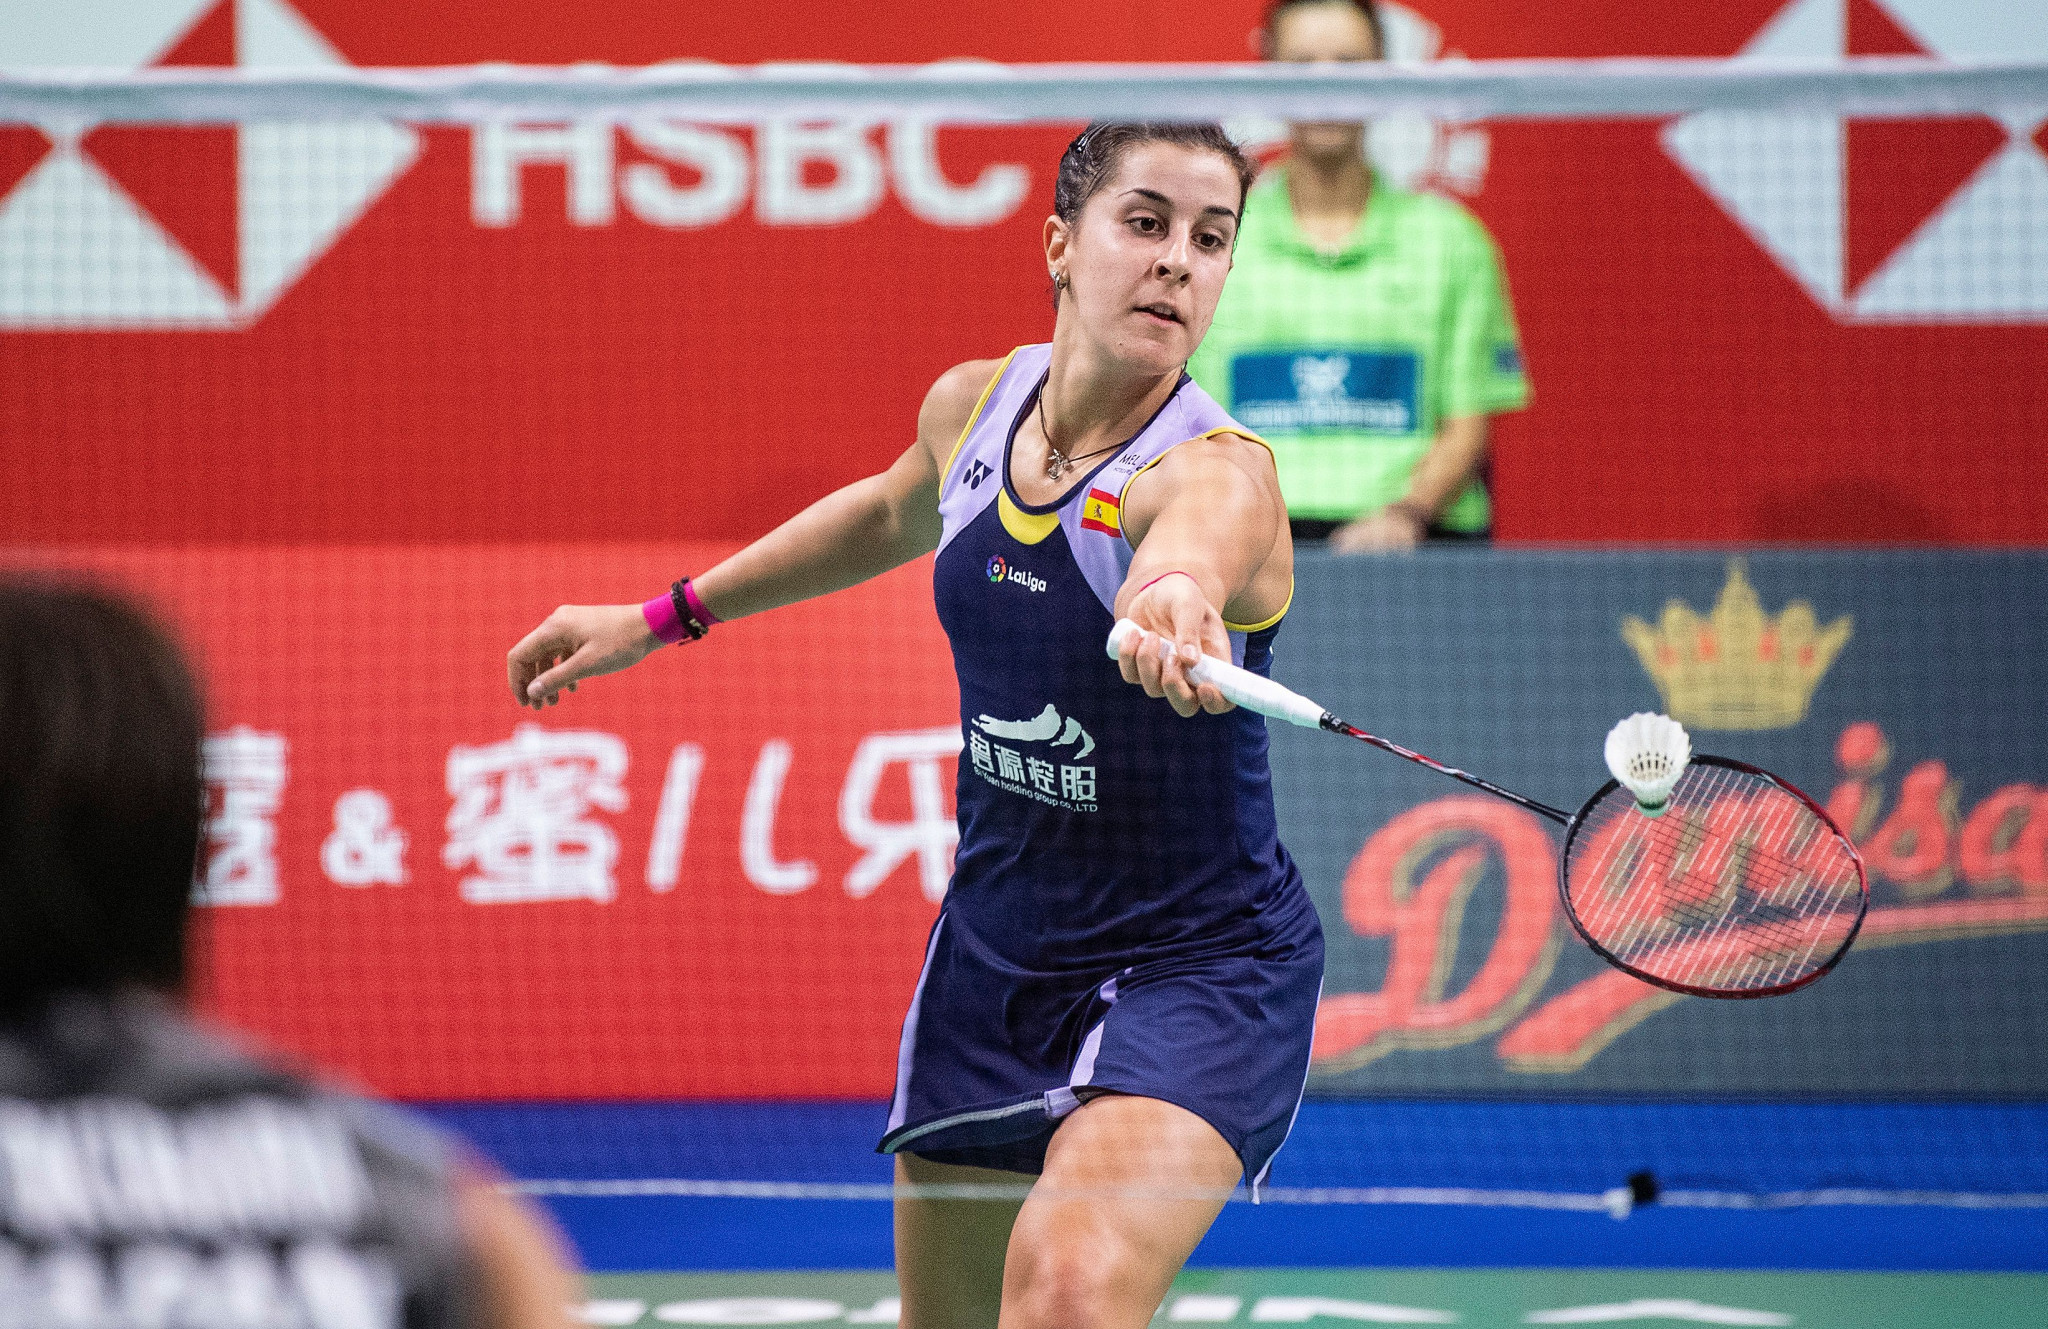 Spain's Olympic champion Carolina Marin knocked out Japanese fourth seed Akane Yamaguchi ©Getty Images